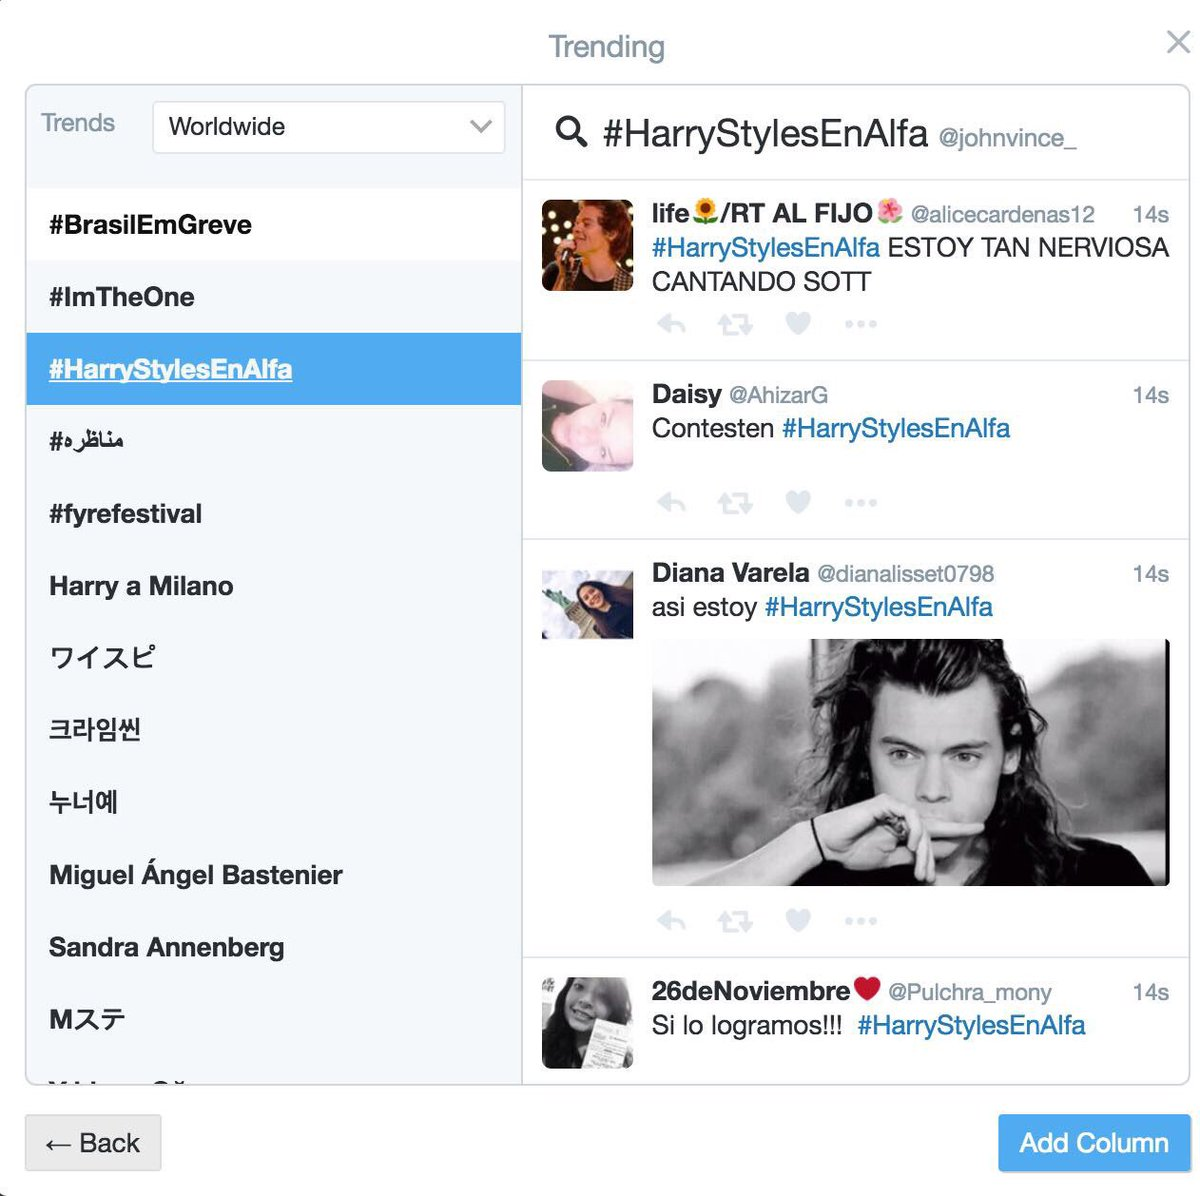 #HarryStylesEnAlfa #Directiones ¡Gracias a ustedes somos TT a nivel mundial! 🇲🇽🙏🏼👏🏼 @Harry_Styles